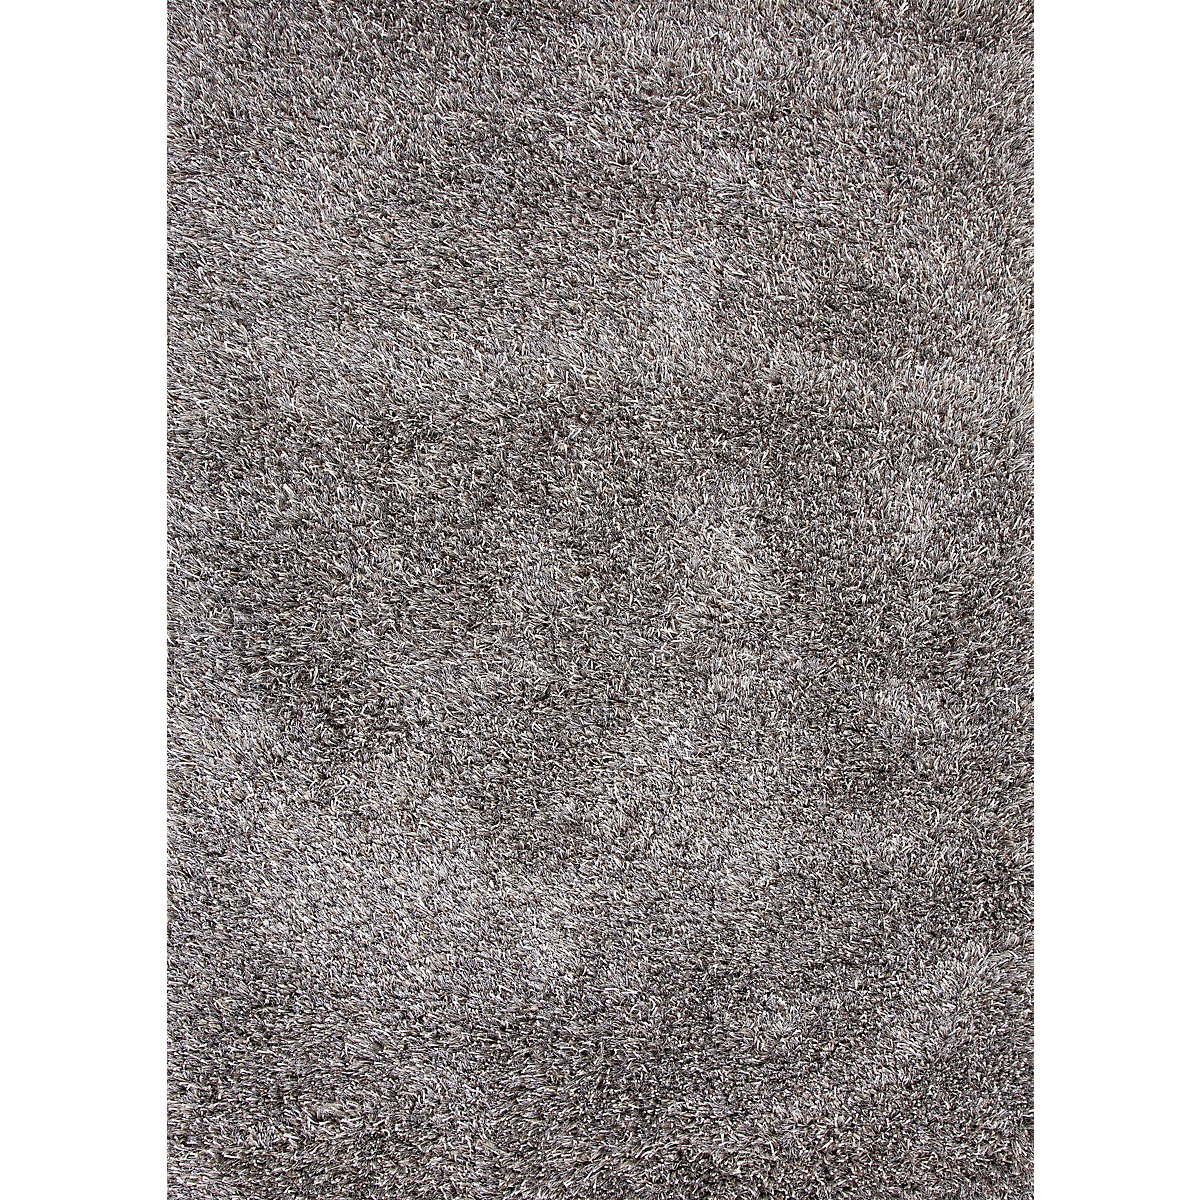 Nadia Light Gray 8X10 Area Rug